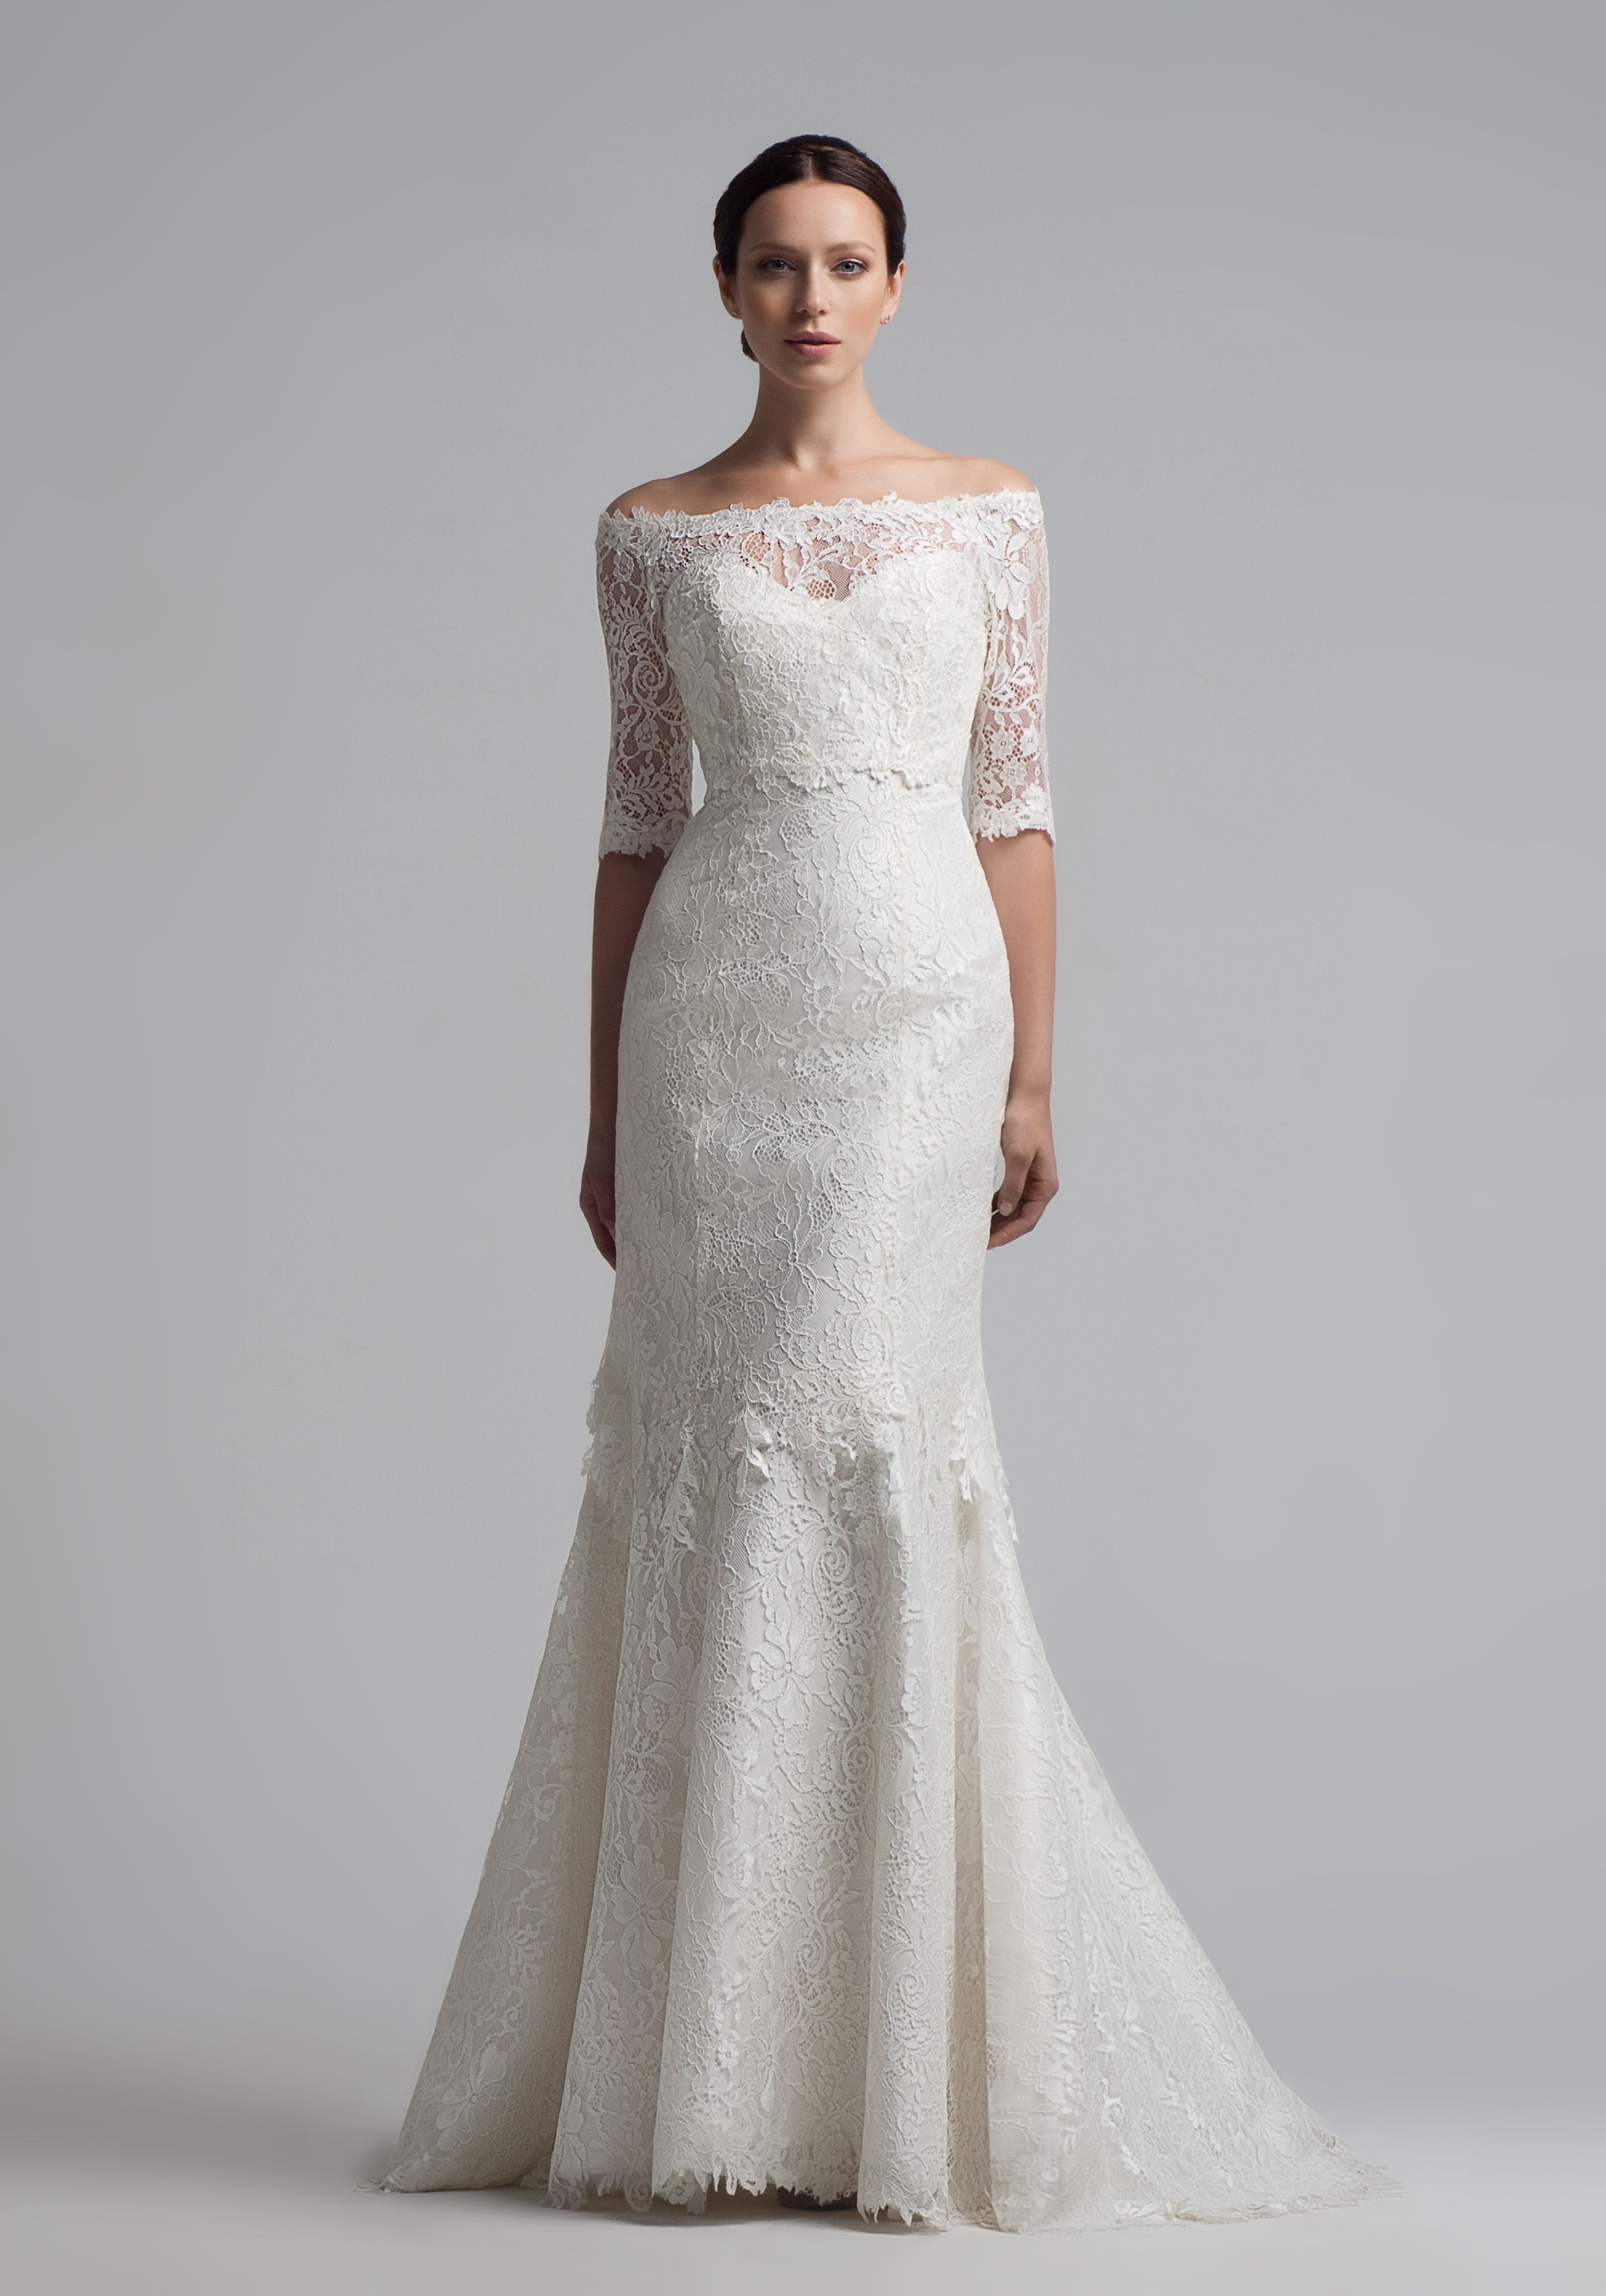 Bristol A Clical Wedding Dress For Those Who Love French Lace